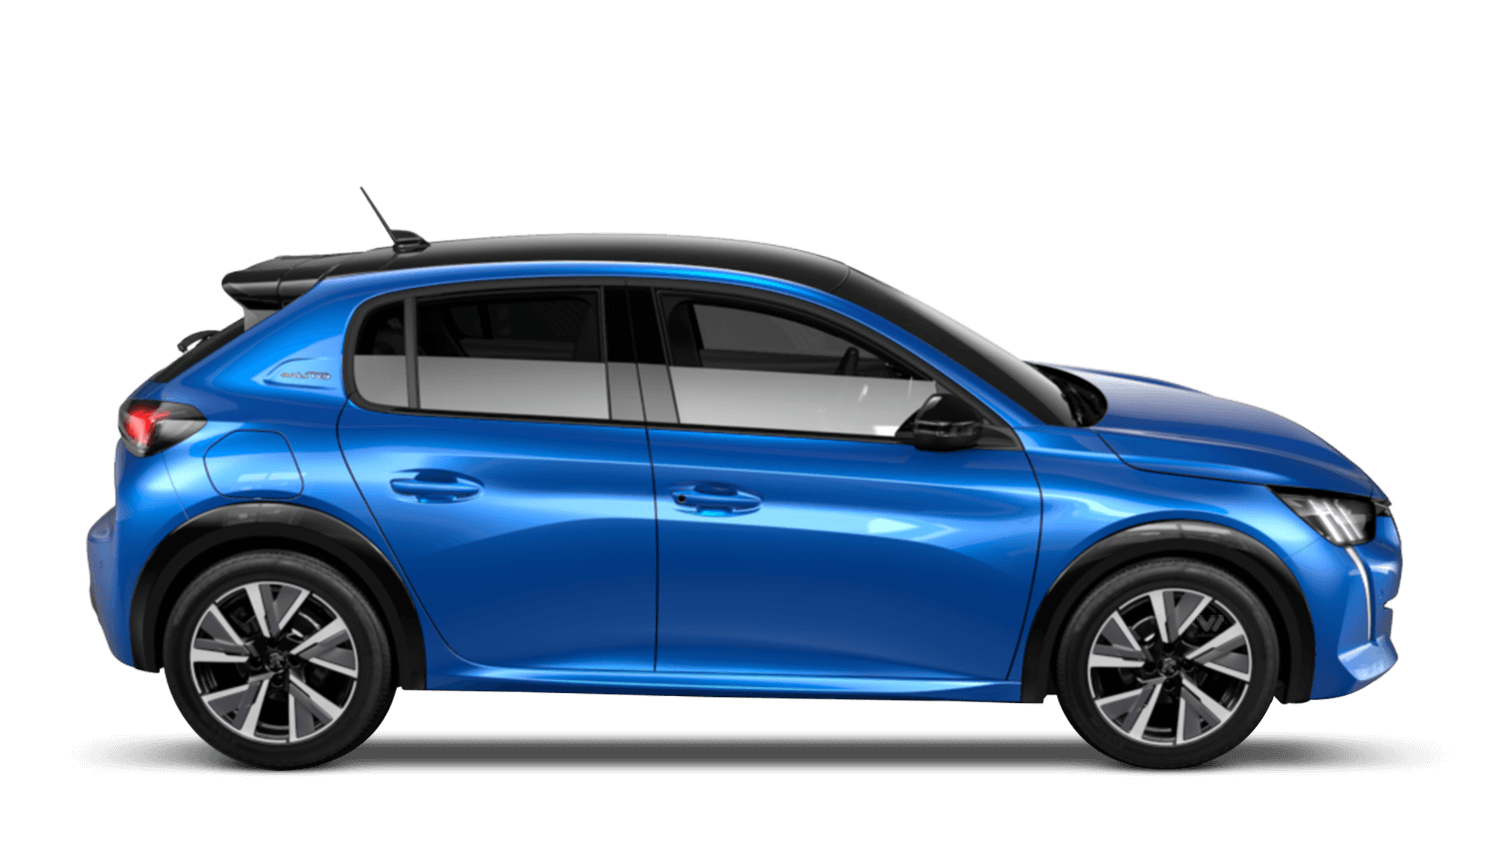 Vertigo Blue All-new Peugeot 208